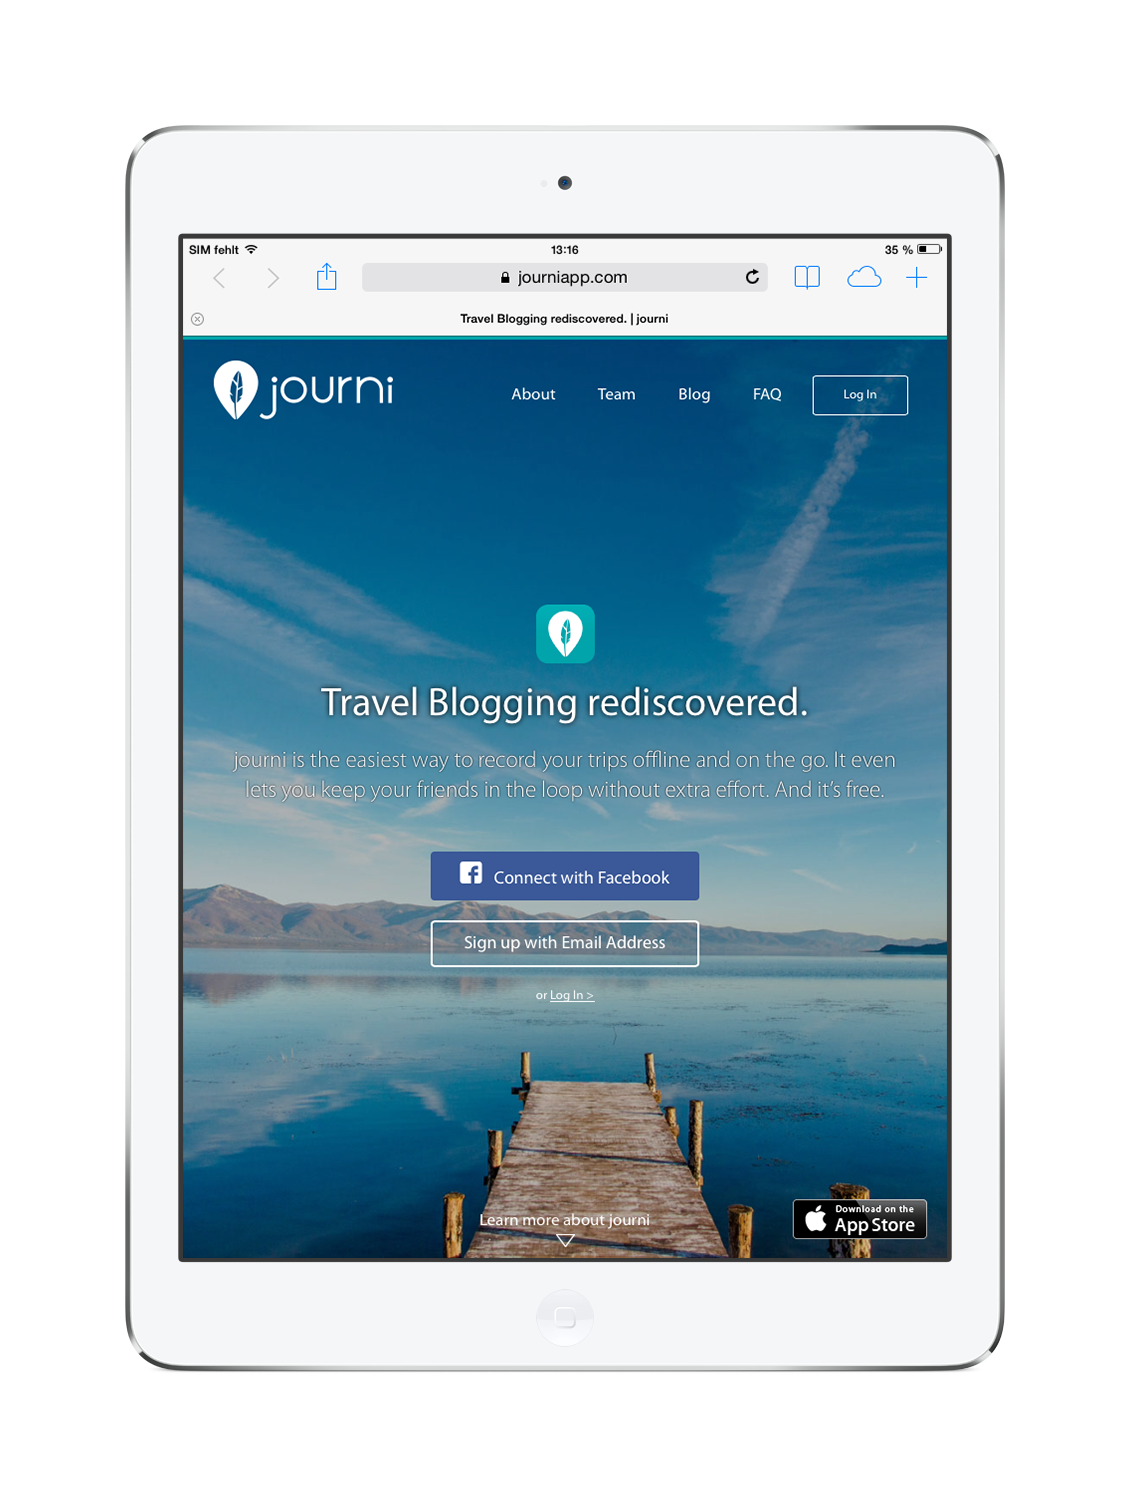 At the moment the Journi app is completely for free